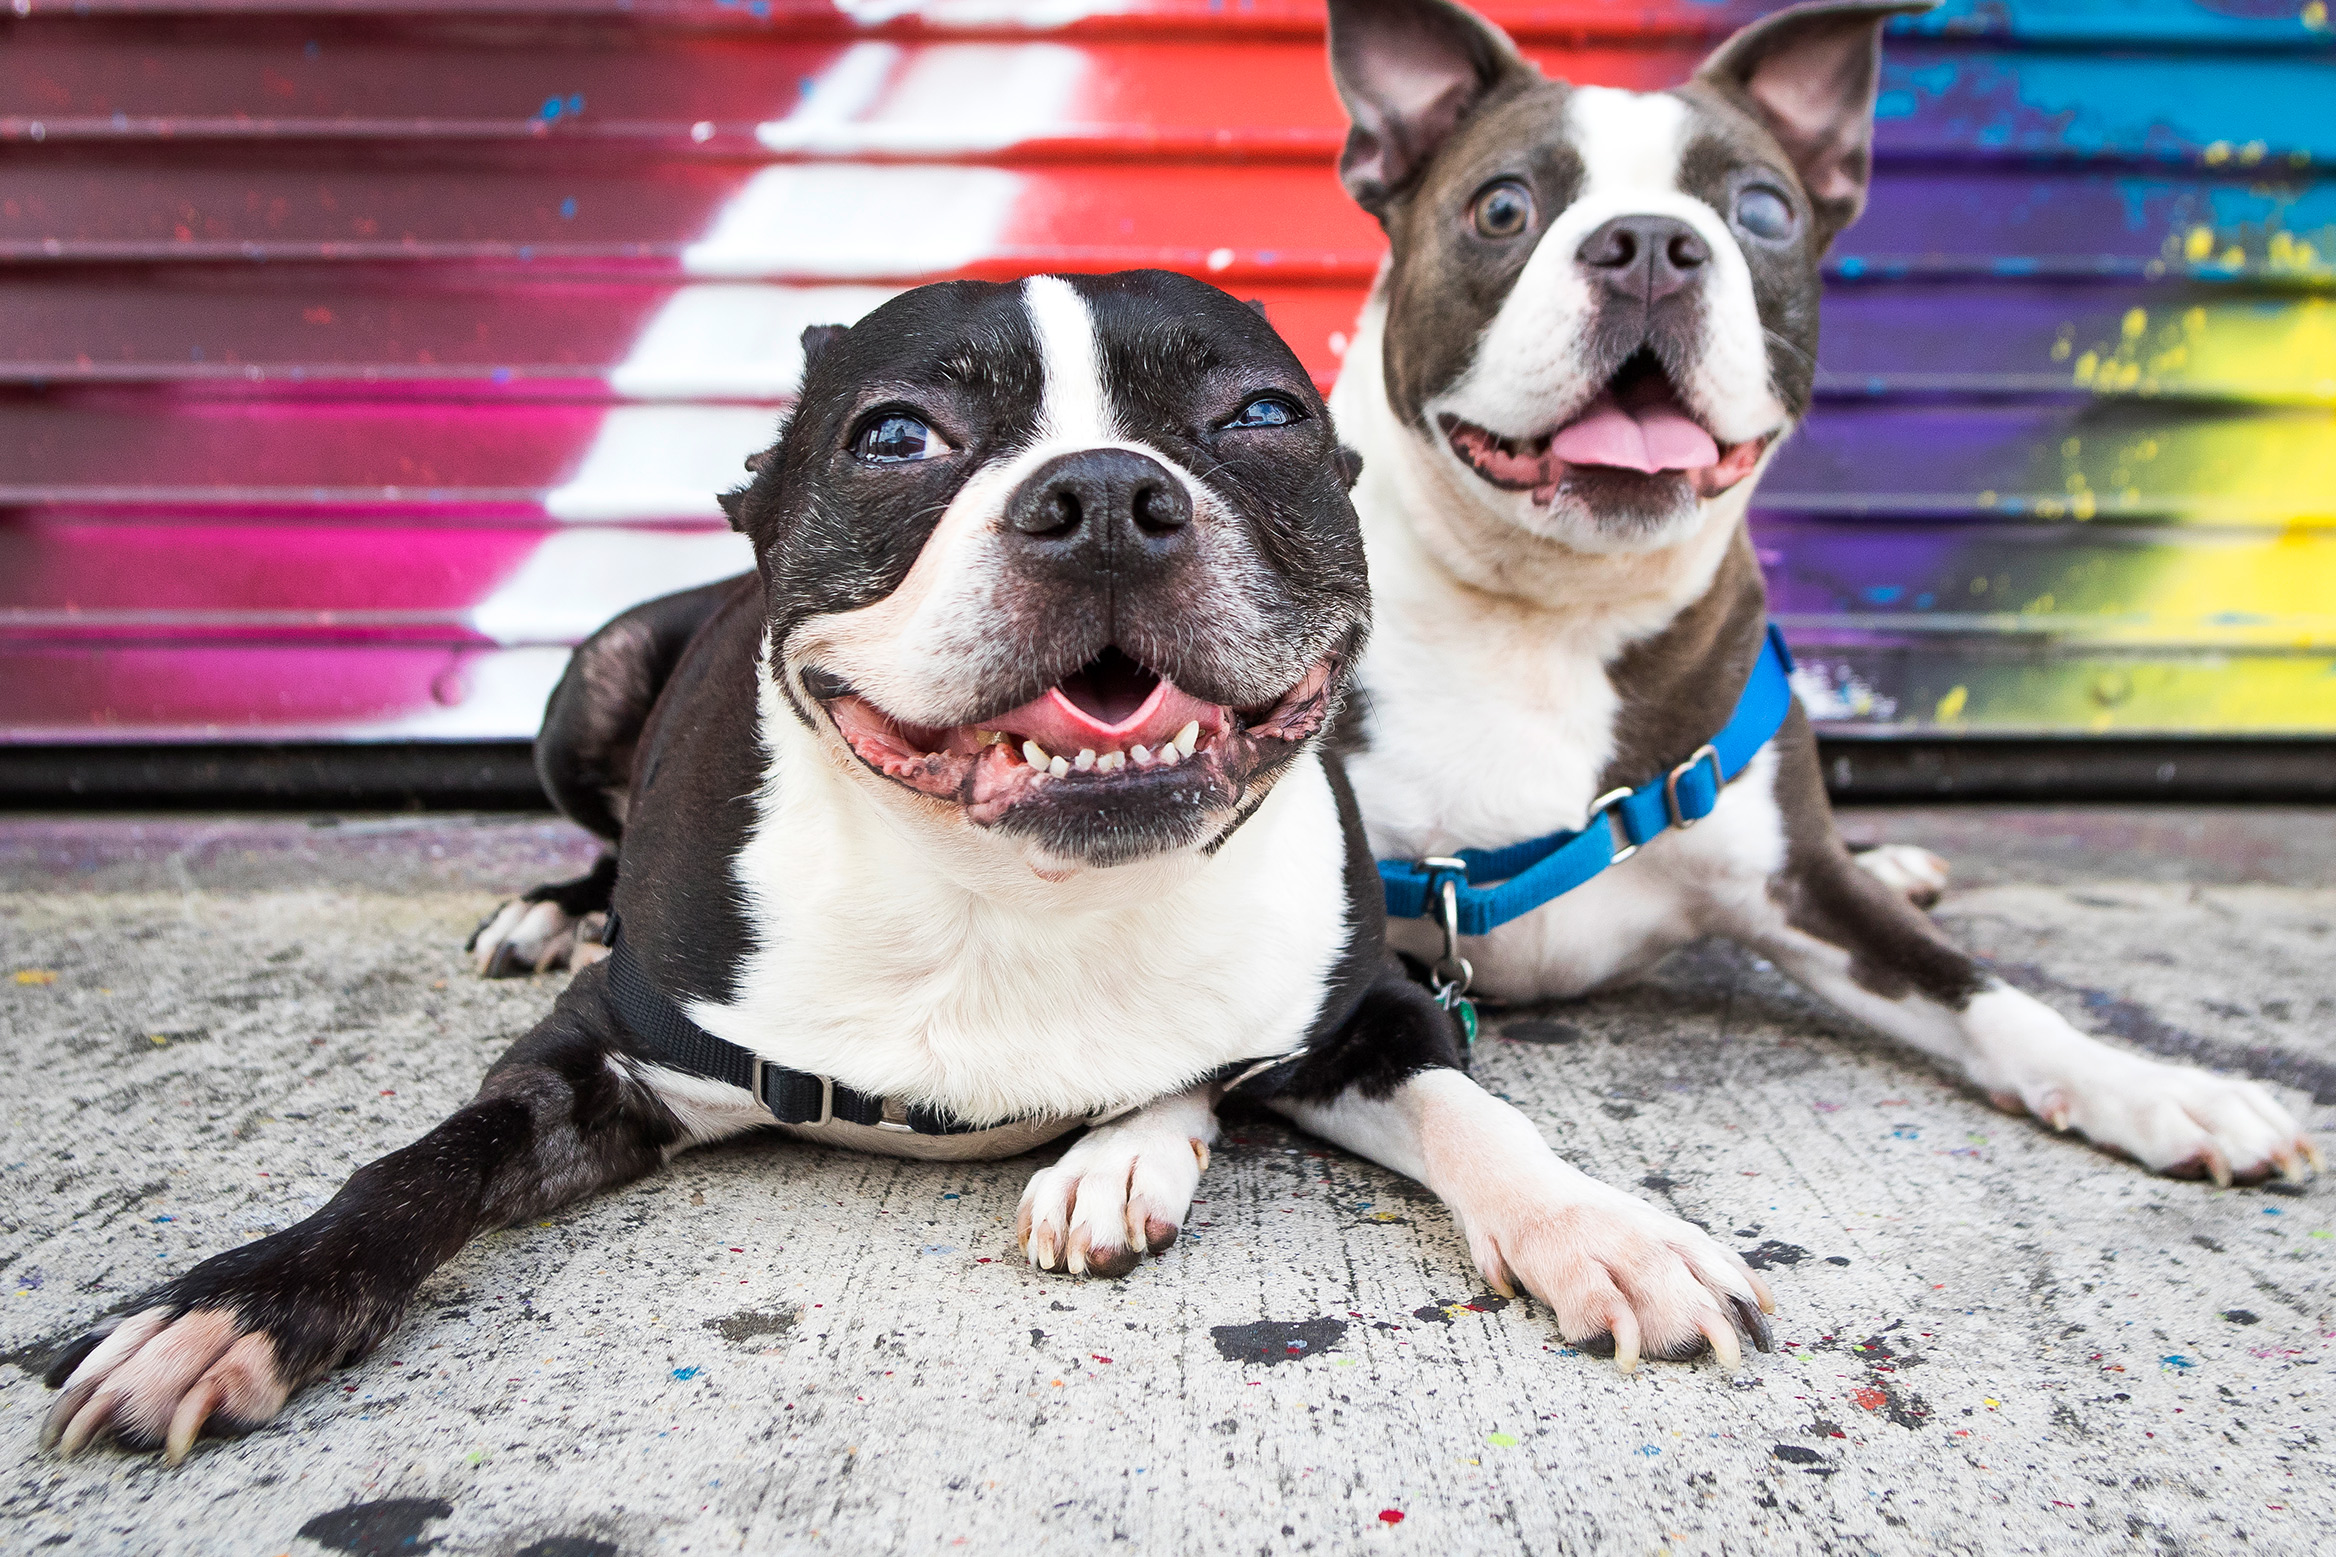 Boston Terrier - Pet & Dog Portrait Photography